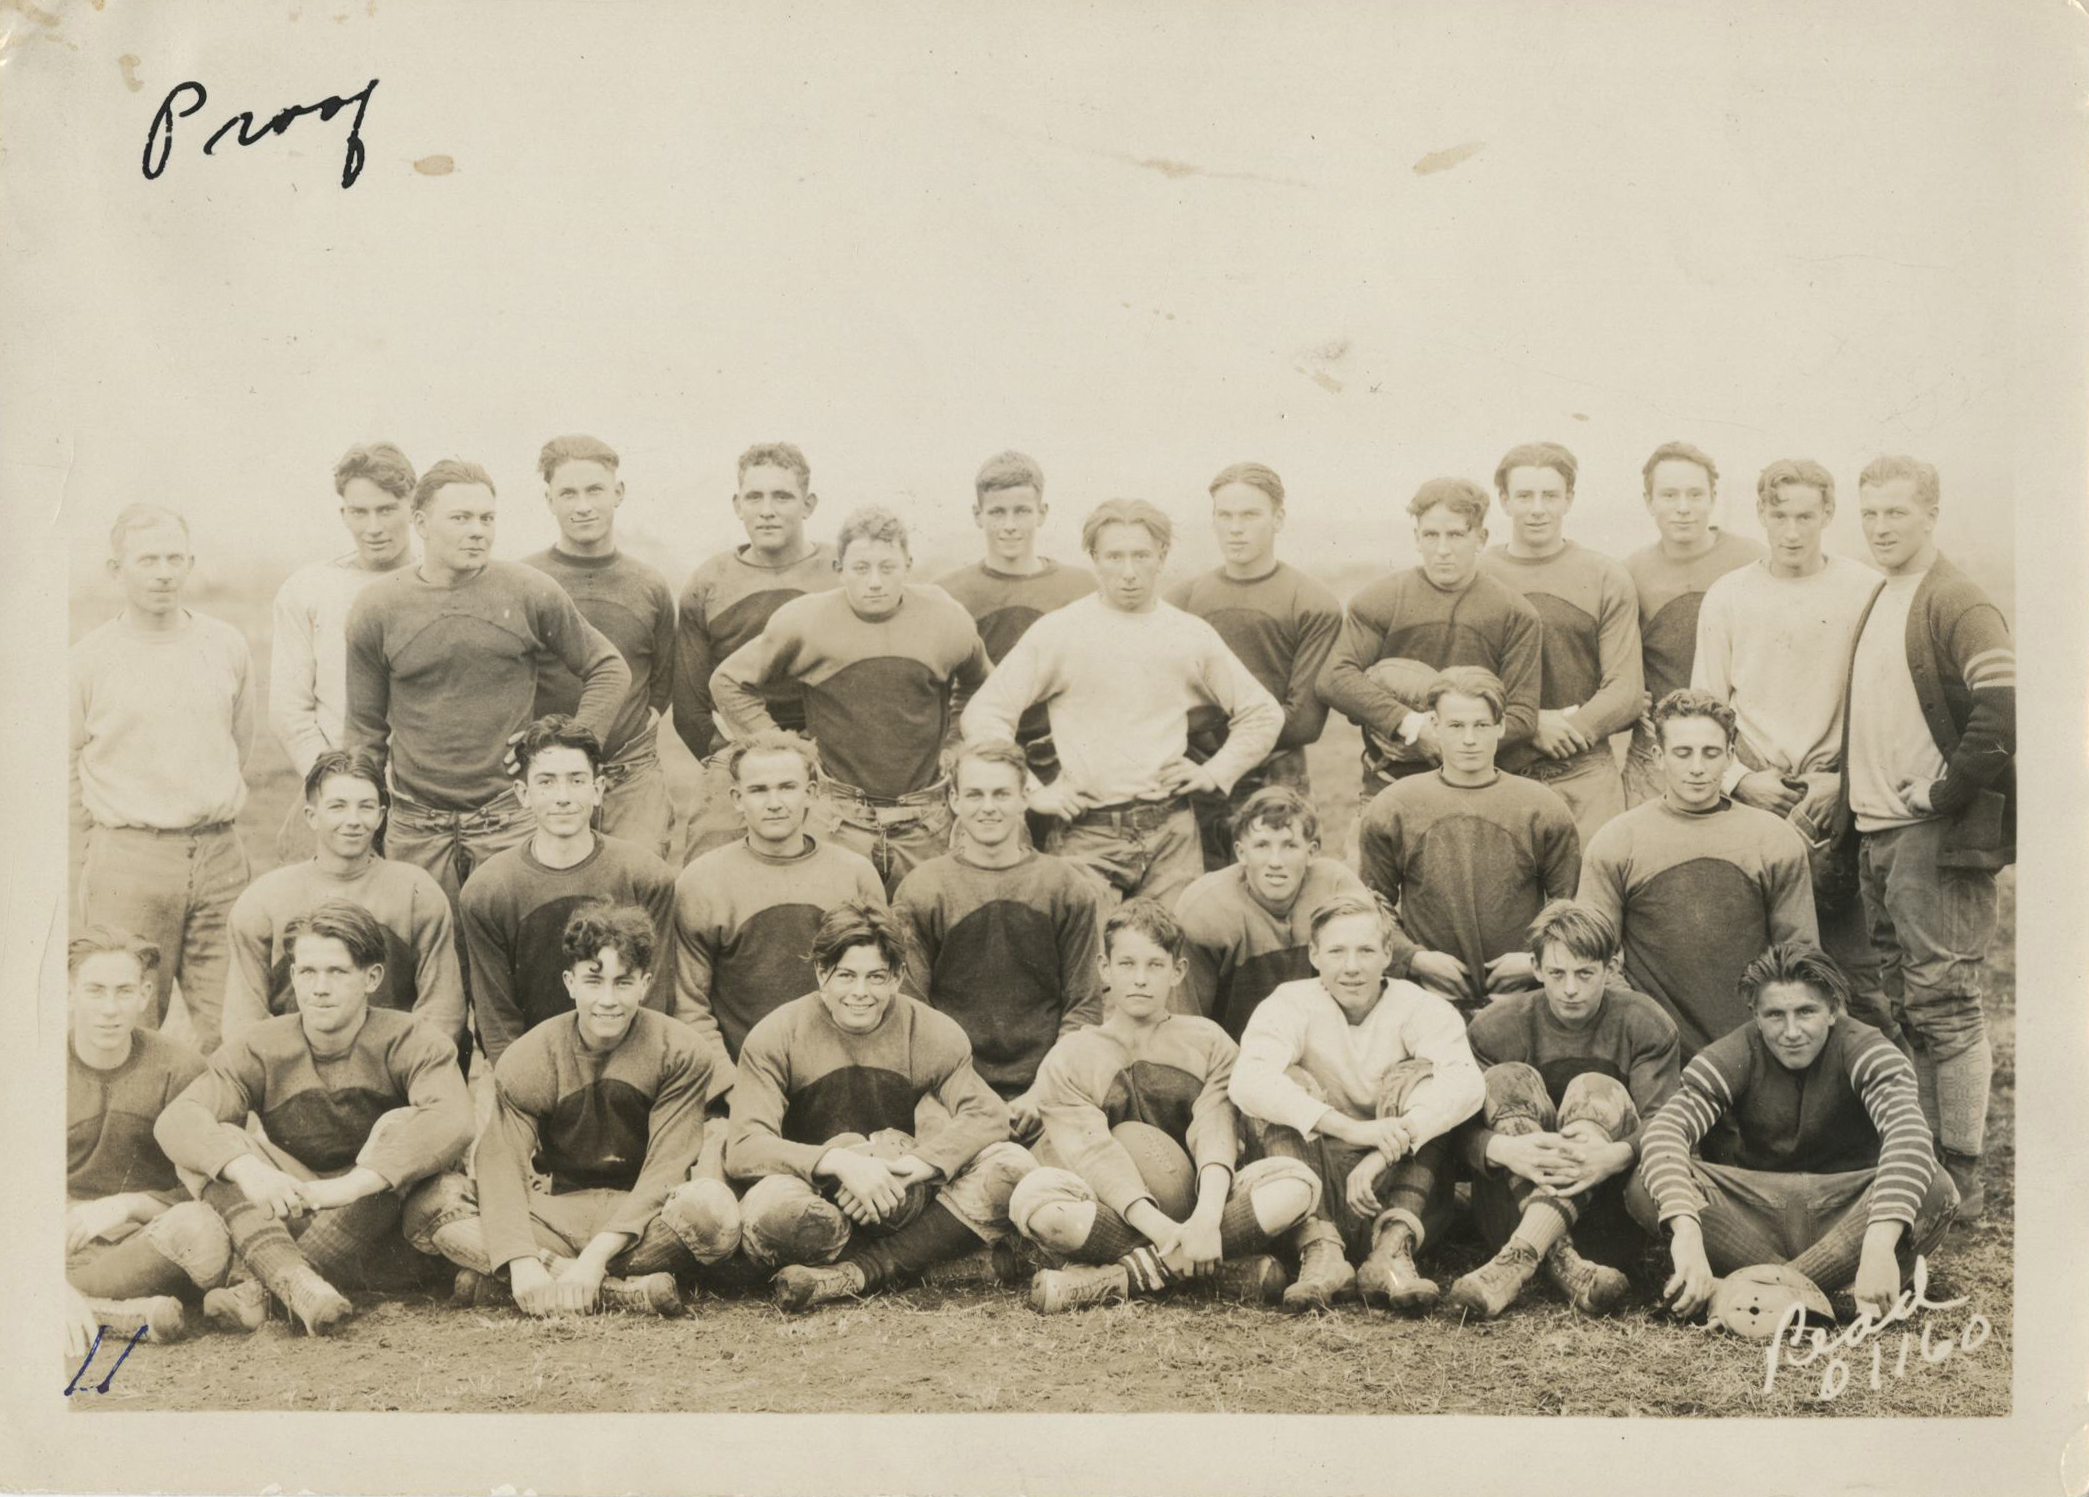 McCall on school football team, front, 4th from right